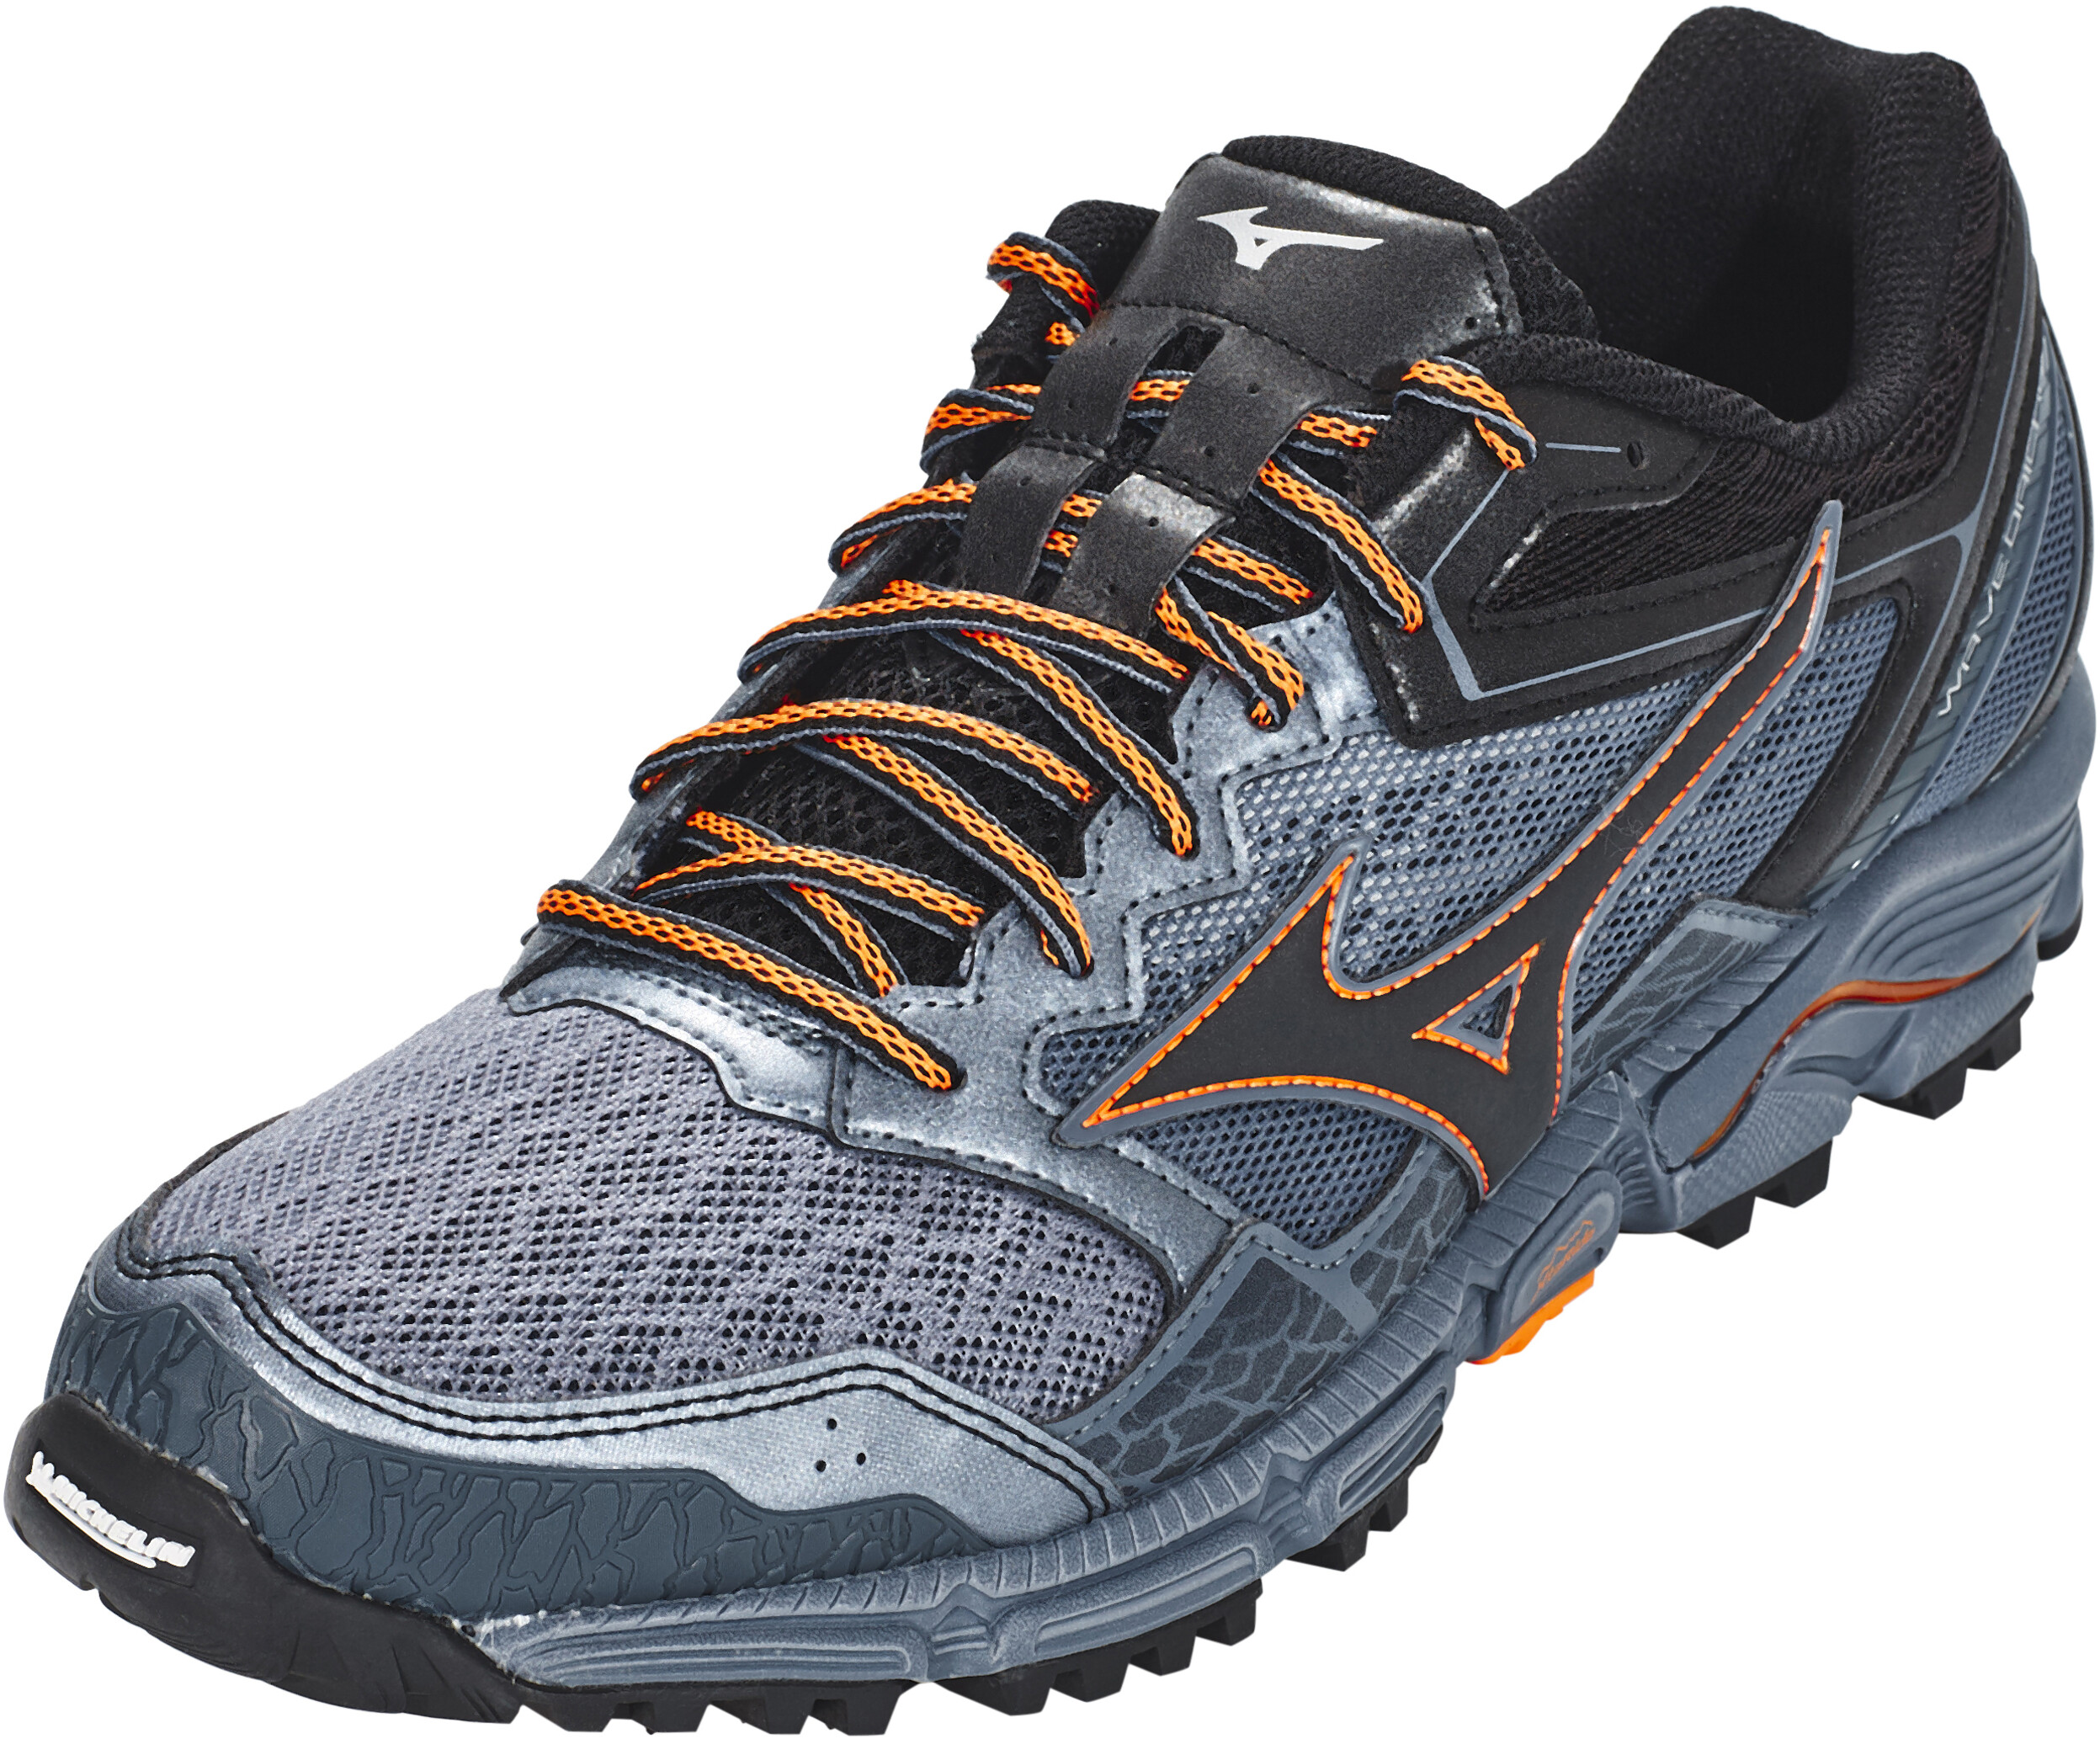 4e045f23c0f Mizuno Wave Daichi 3 Running Shoes Men grey black at Bikester.co.uk